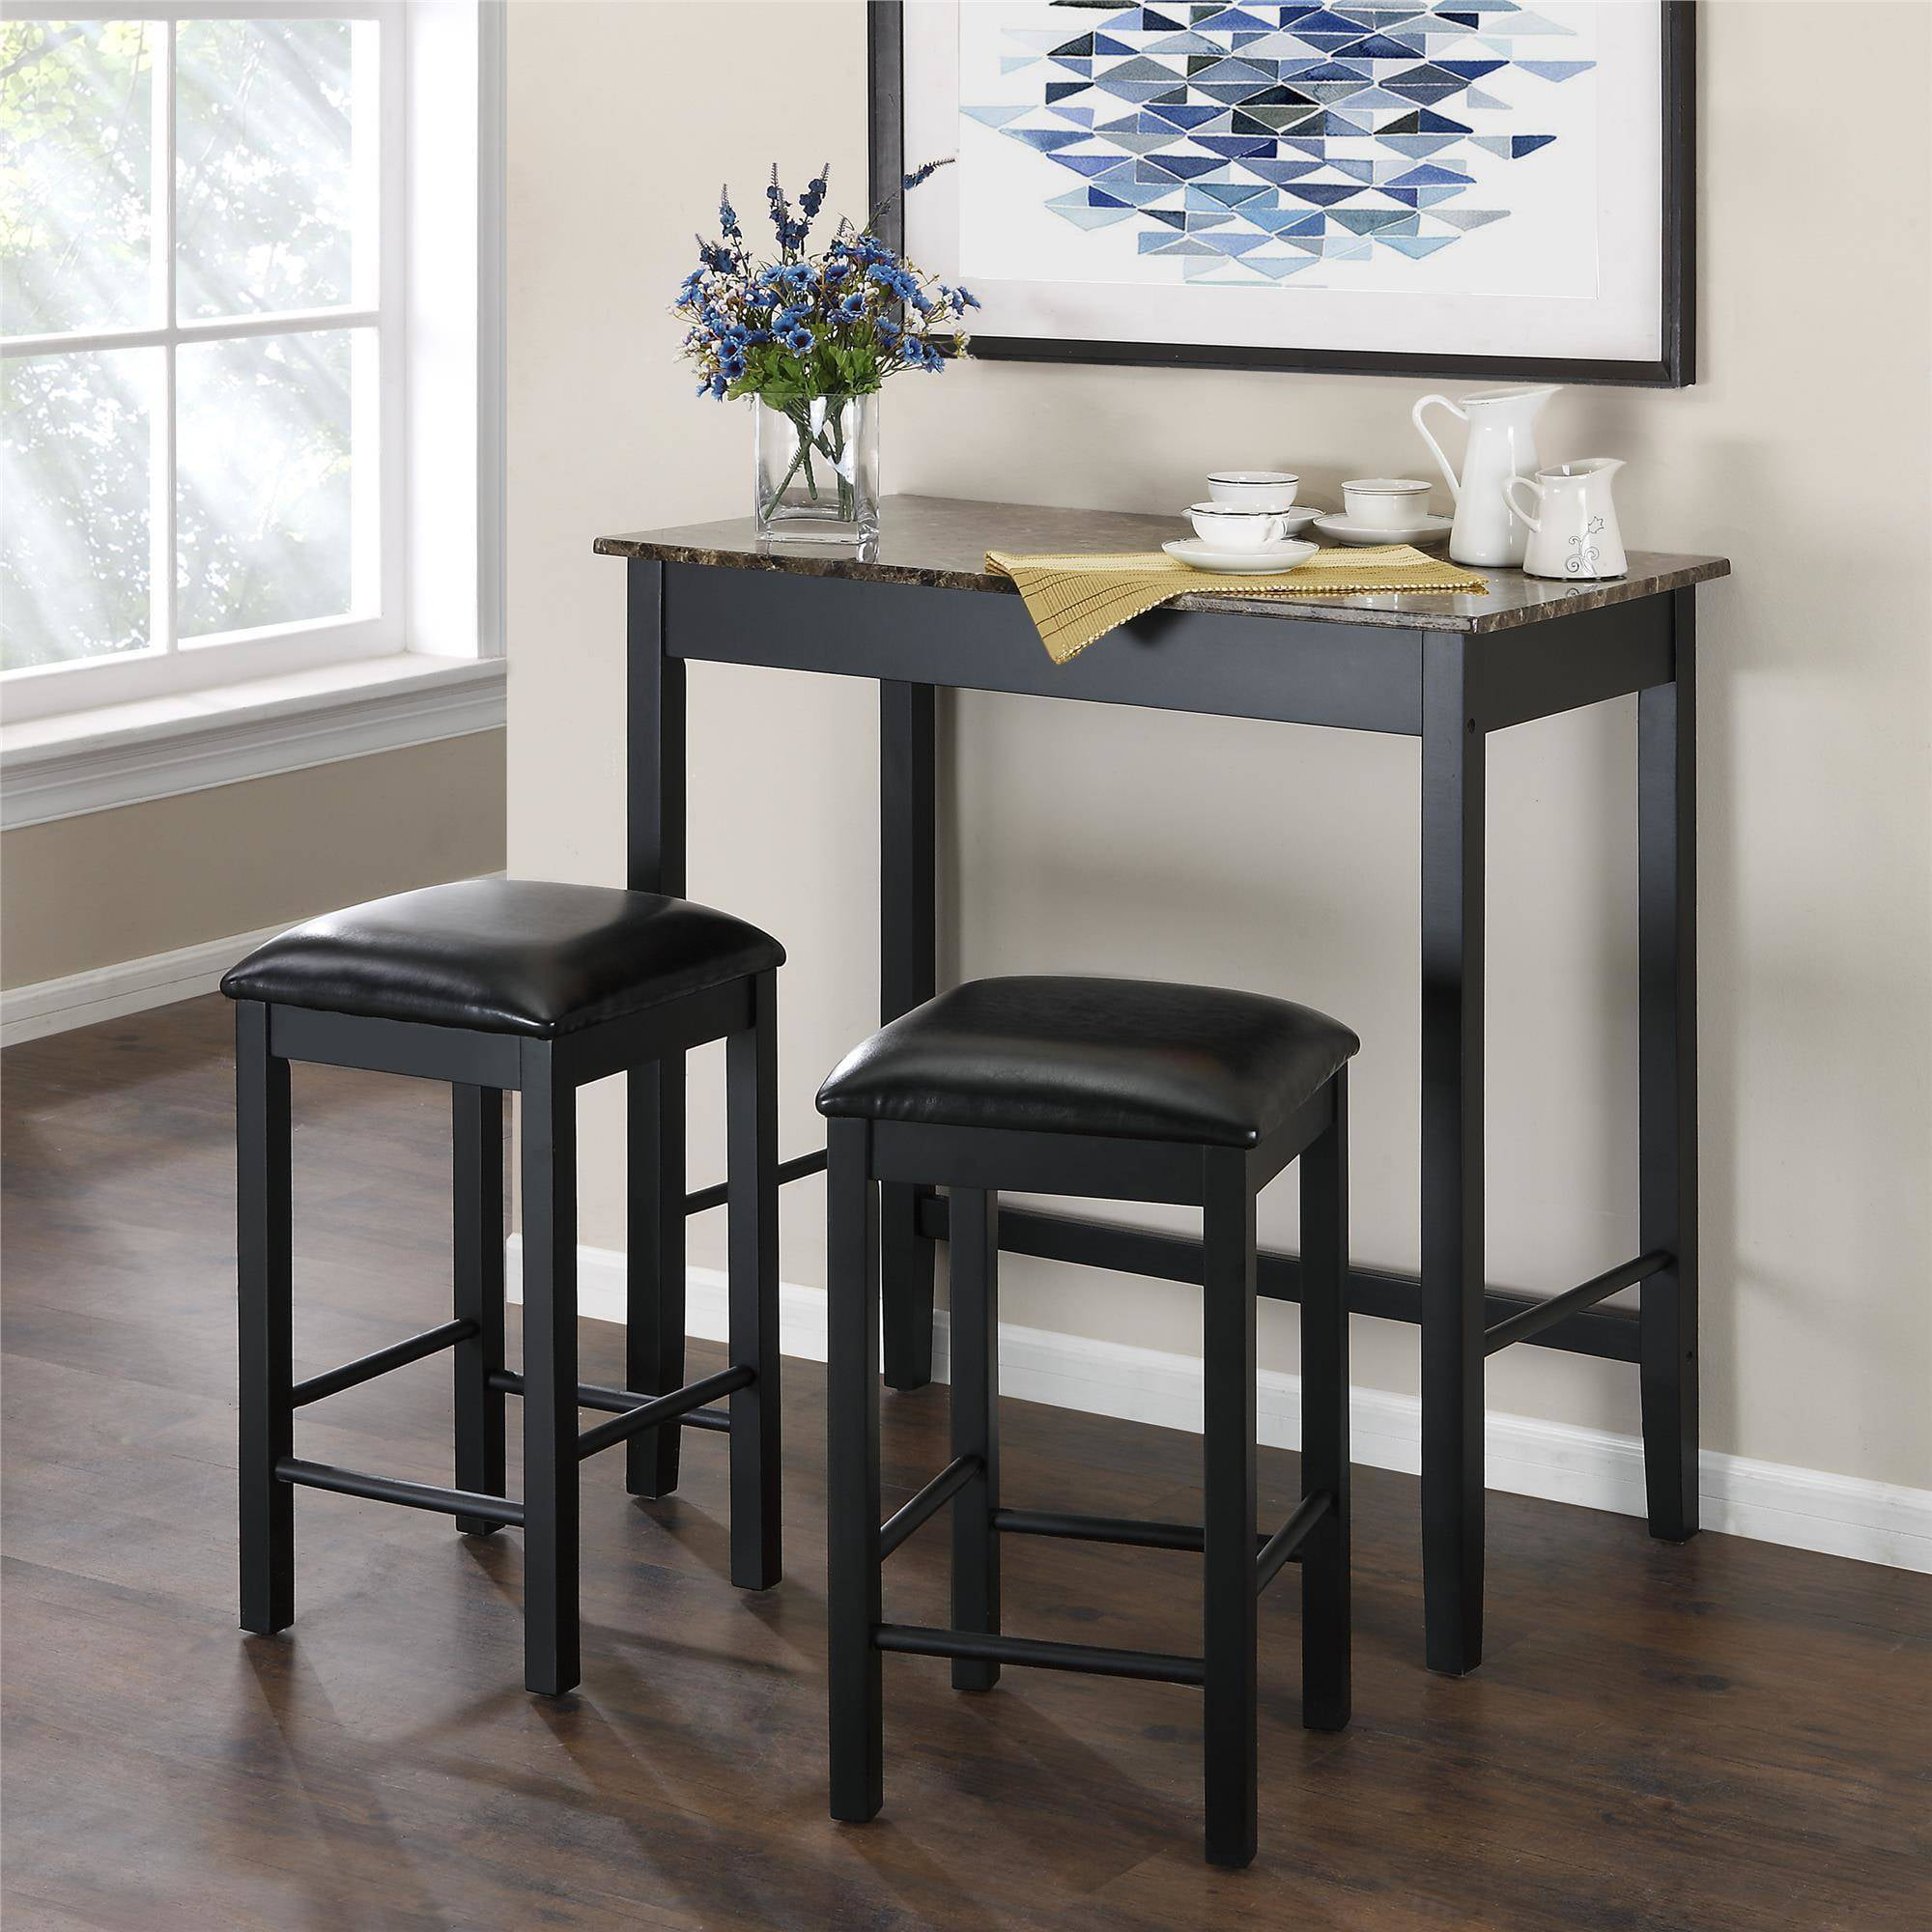 Dorel Living Devyn 3-Piece Faux Marble Pub Dining Set, Black - Walmart.com